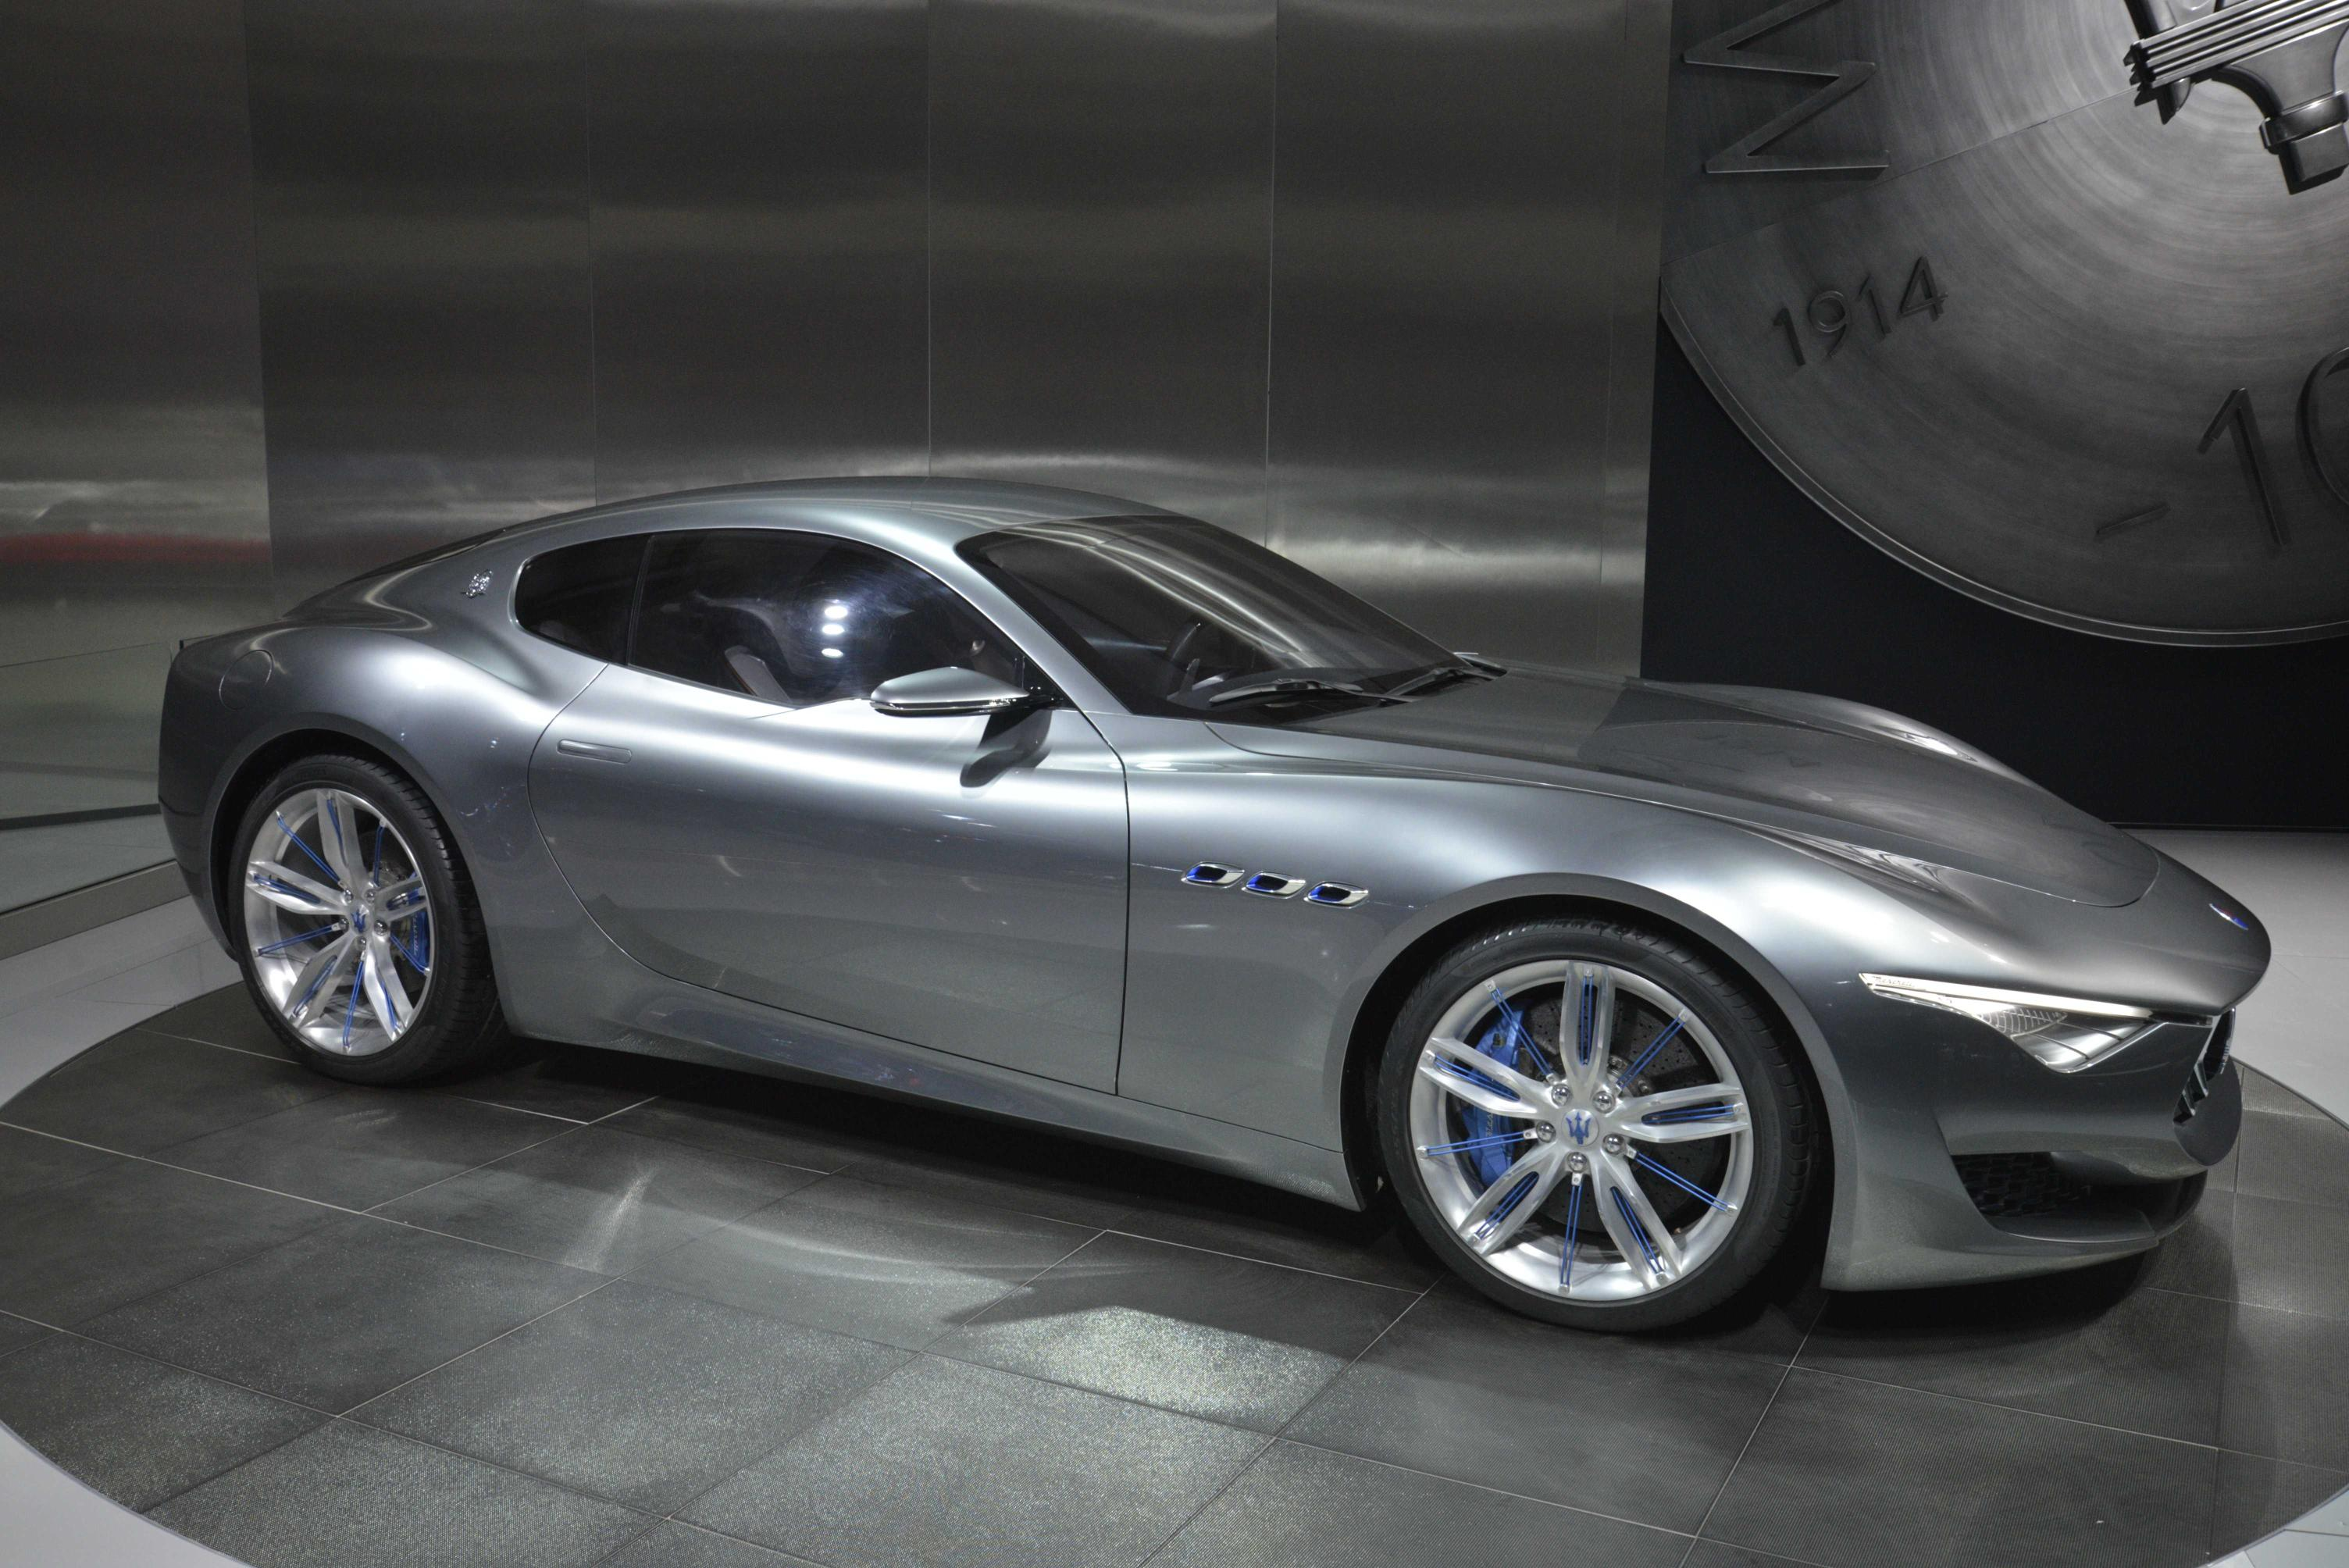 Maserati Models Going Hybrid or Electric After 2019 - autoevolution